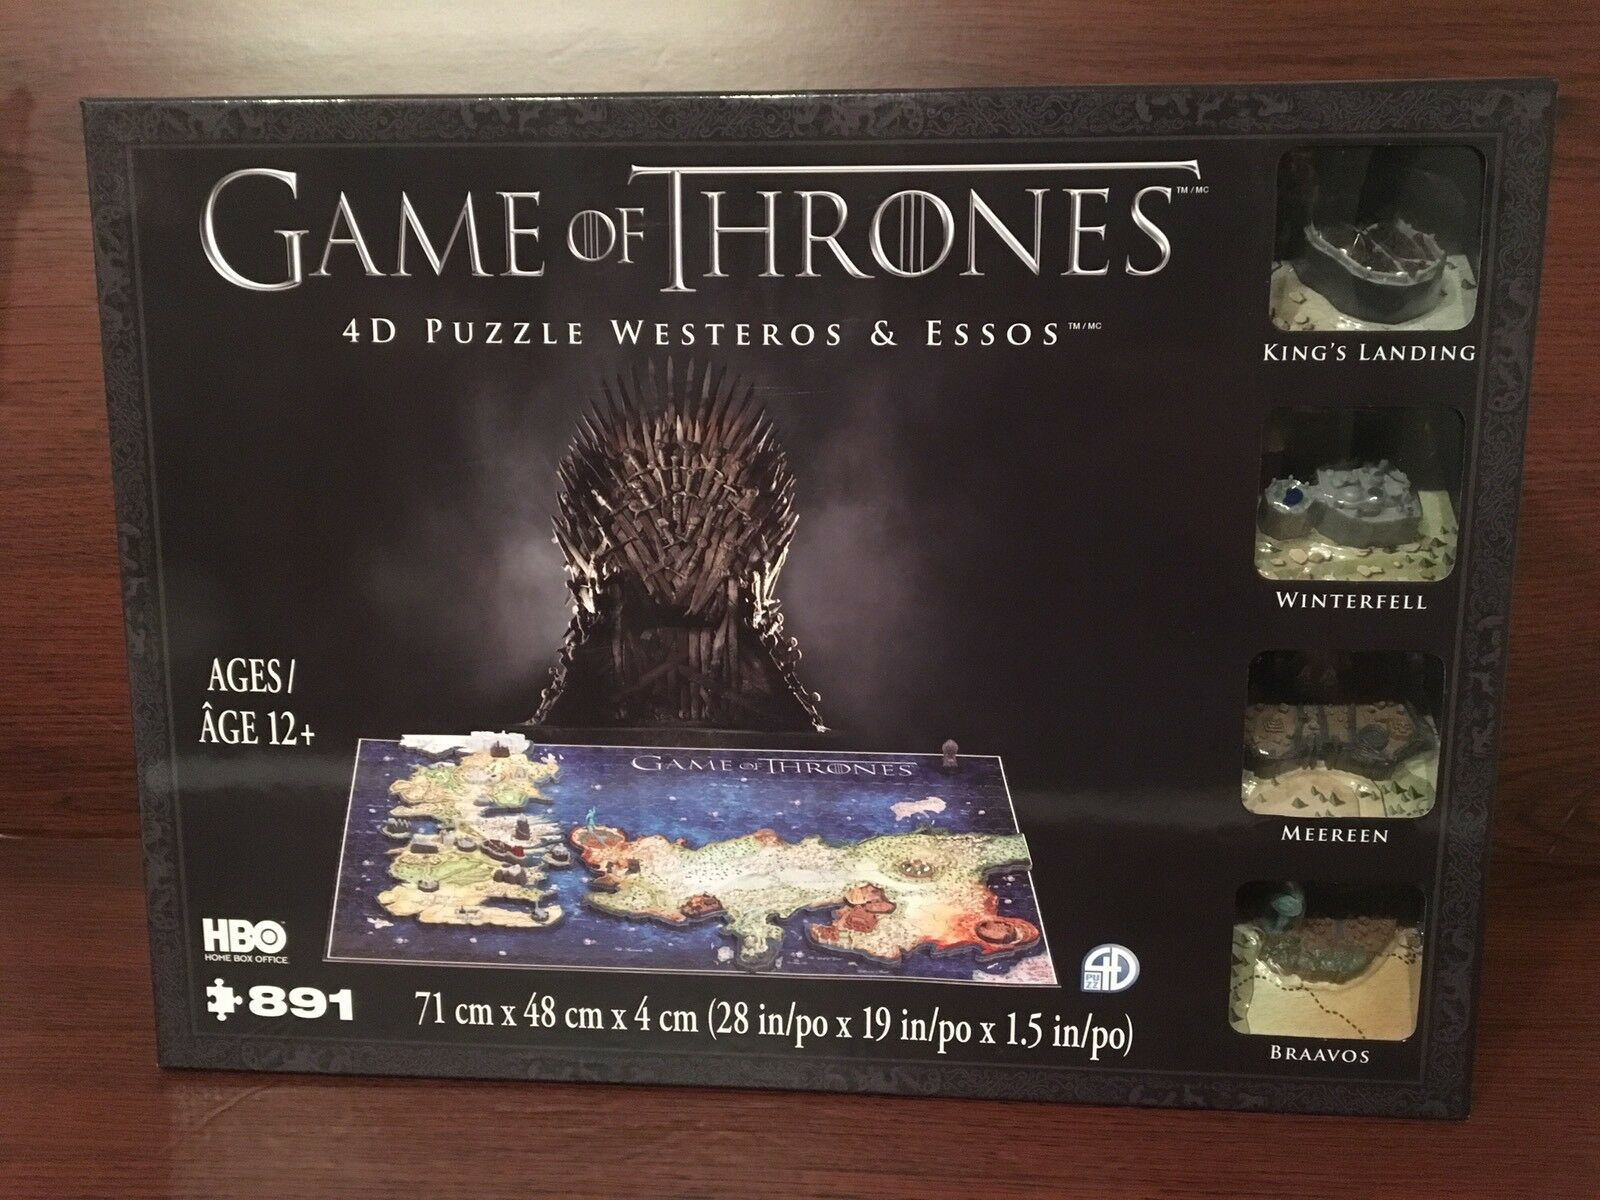 Brand New And SEALED Game of Thrones Westeros & Essos 4D Puzzle, 891+ Piece Set